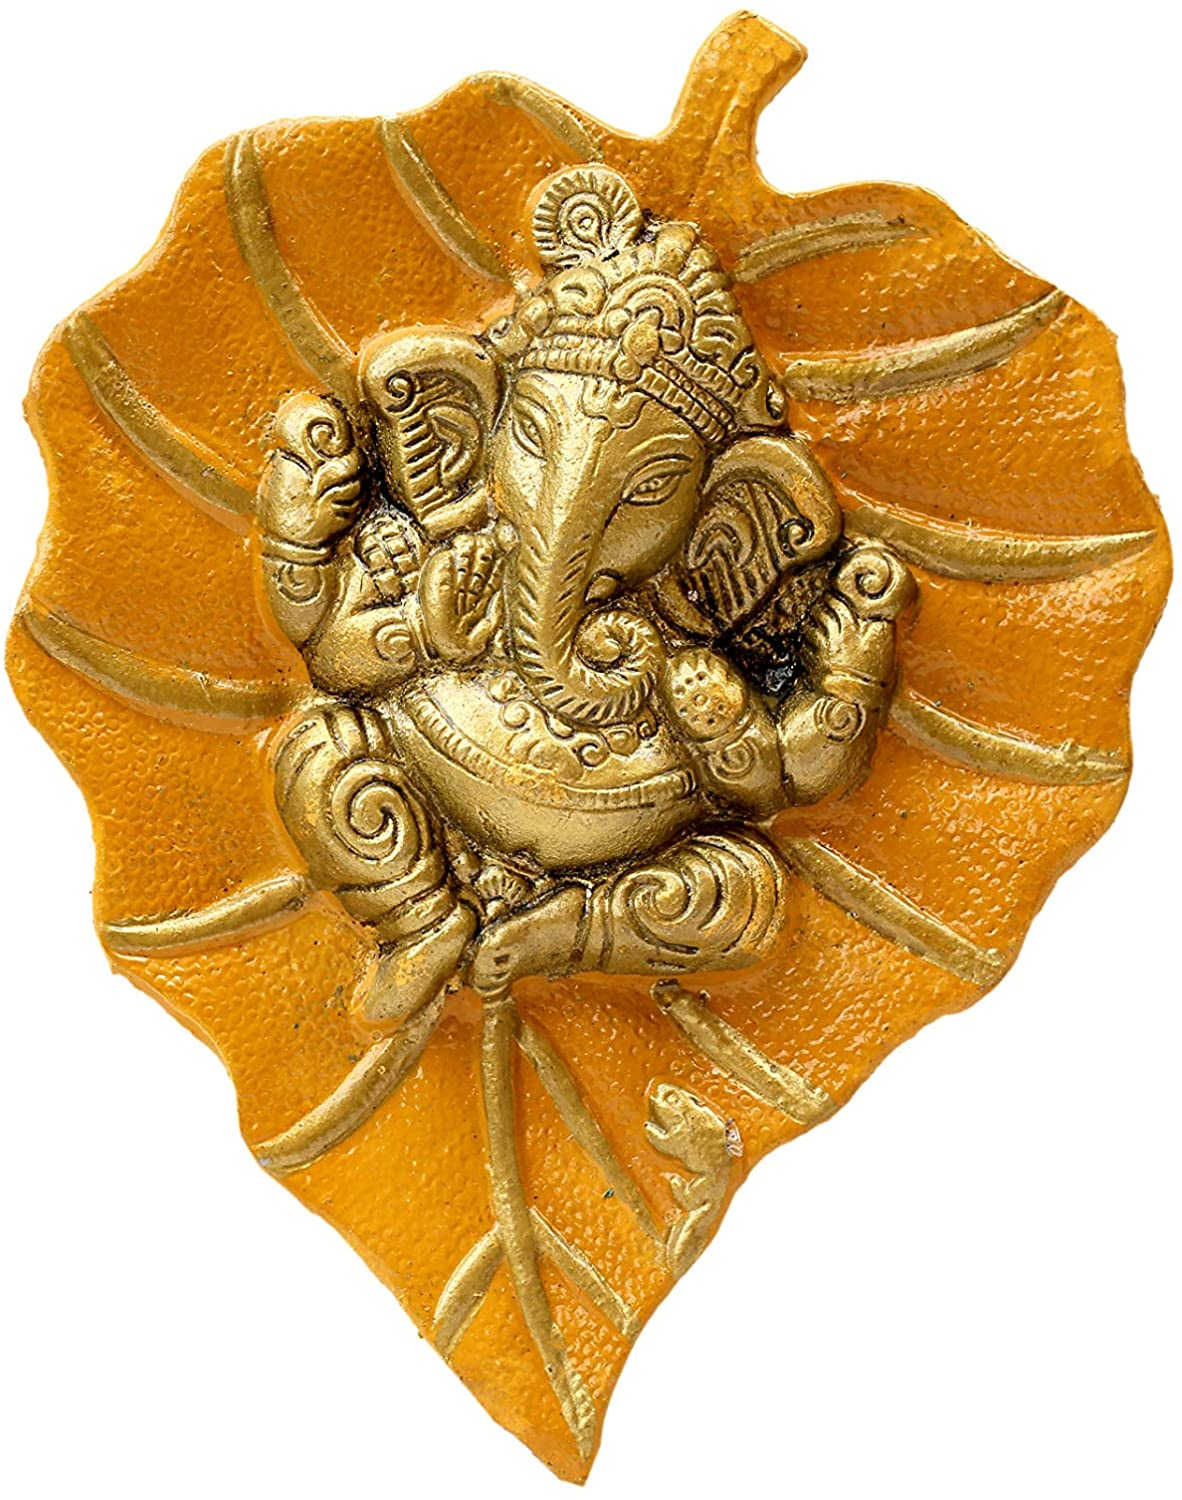 Charmy Crafts Metal Ganesha On Leaf, Wall Hanging Article for Wall Decor, Wedding Gifts, Best for Housewarming, Room Decor (Mustard Yellow)